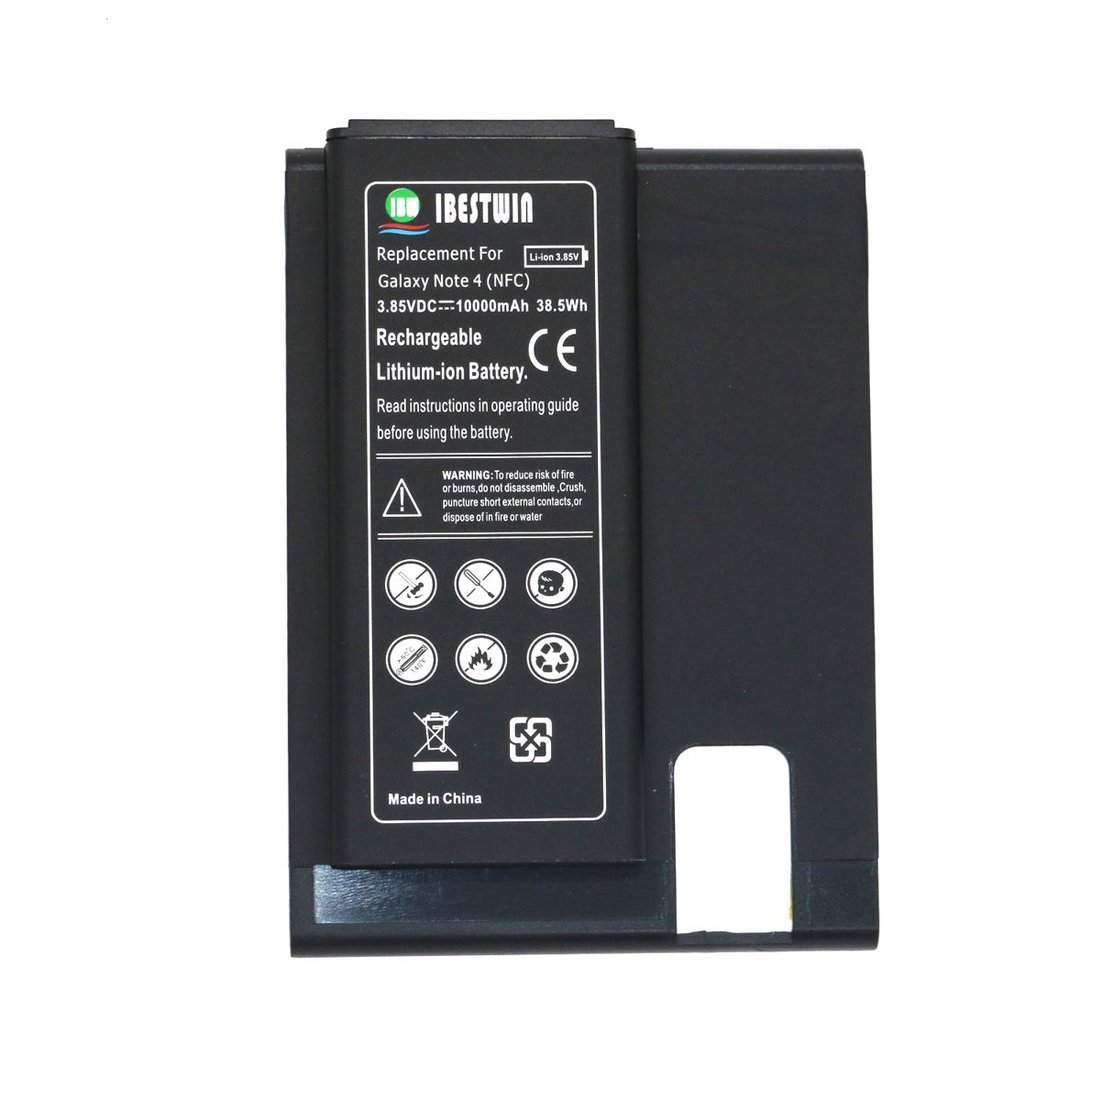 be7413bf0 IBESTWIN Extended Battery For Samsung Galaxy Note 4 with NFC (10000MAH)